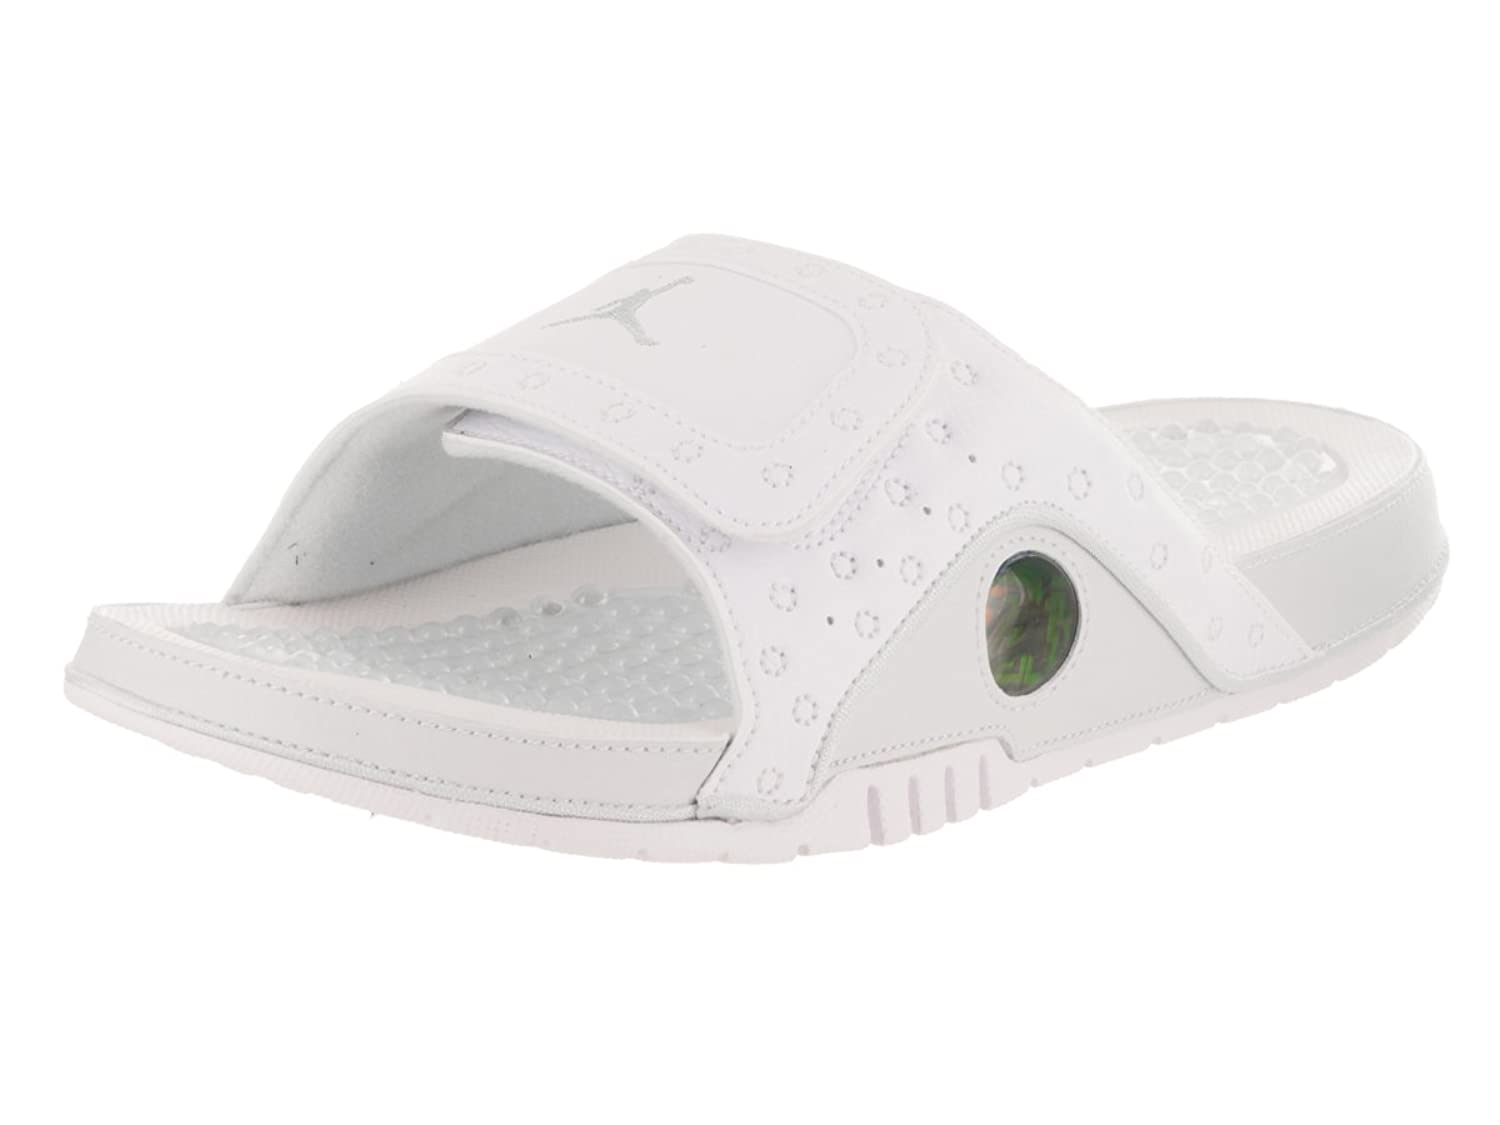 d6cc48a0142605 Nike Mens Hydro XIII Retro White Metallic Silver Synthetic Sandals 9 UK   Amazon.co.uk  Shoes   Bags